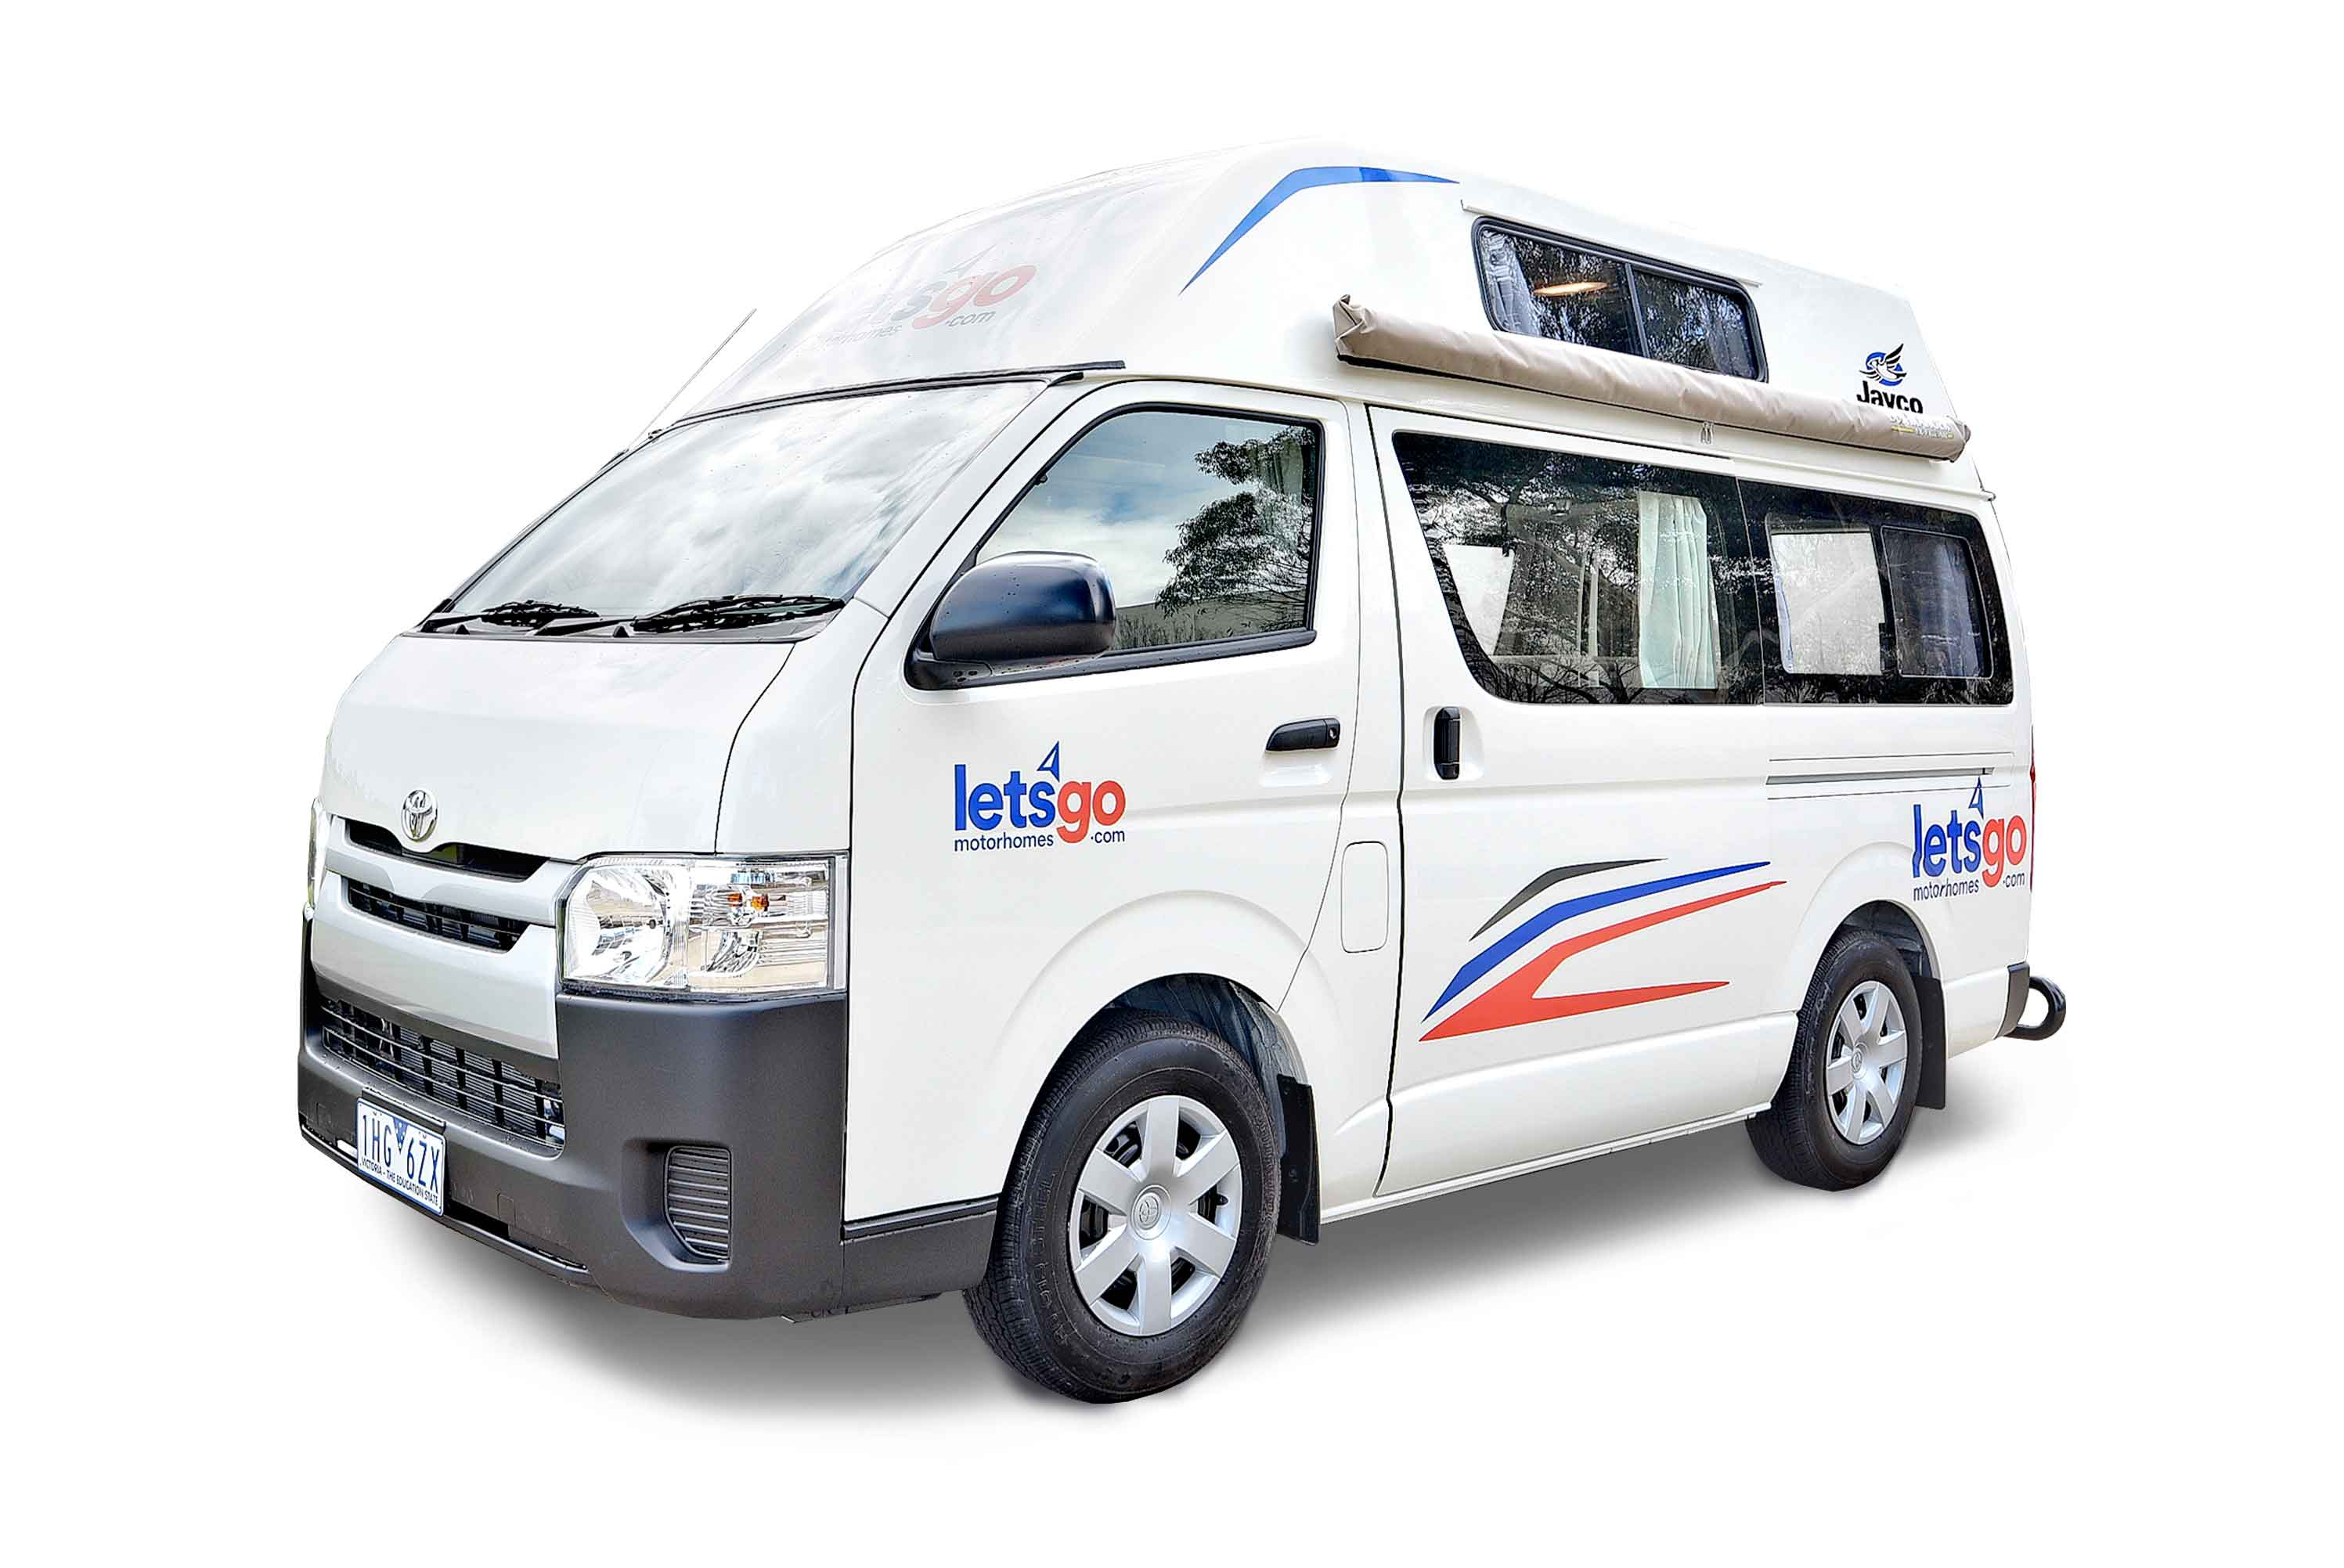 HiTop Campervans